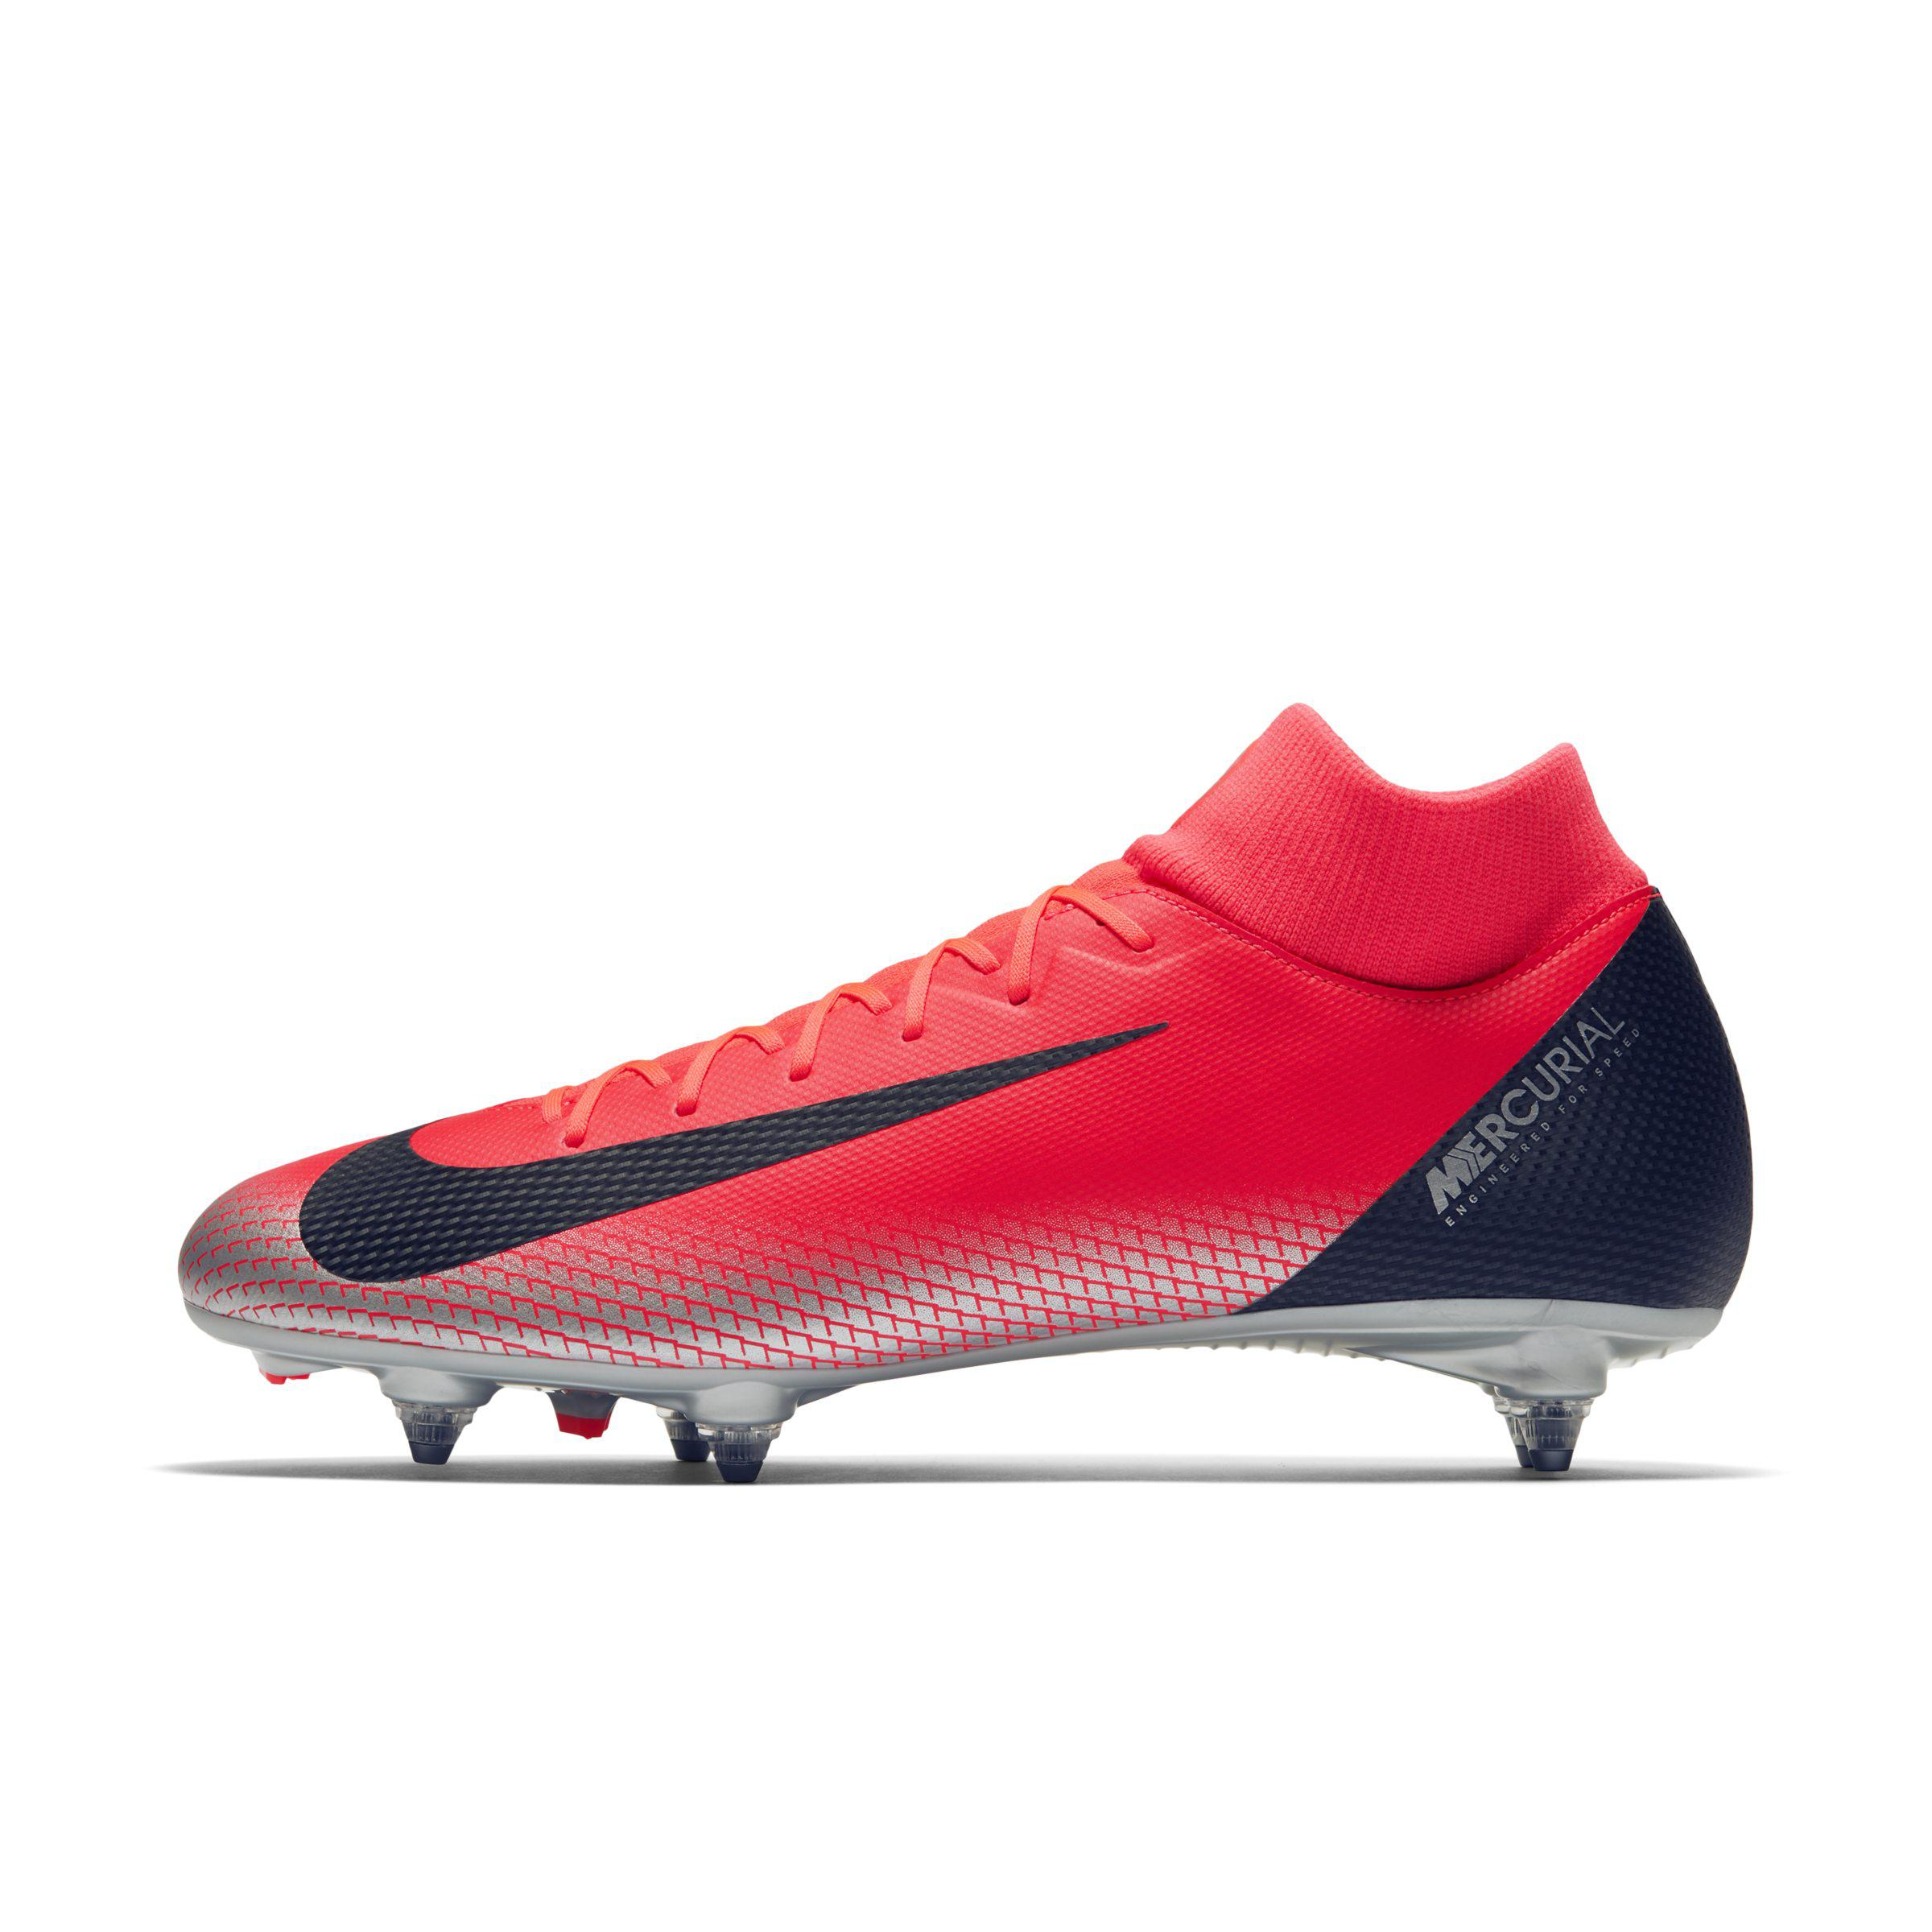 d8aba0d56f8 Nike Cr7 Superfly 6 Academy Soft-ground Football Boot in Red - Lyst